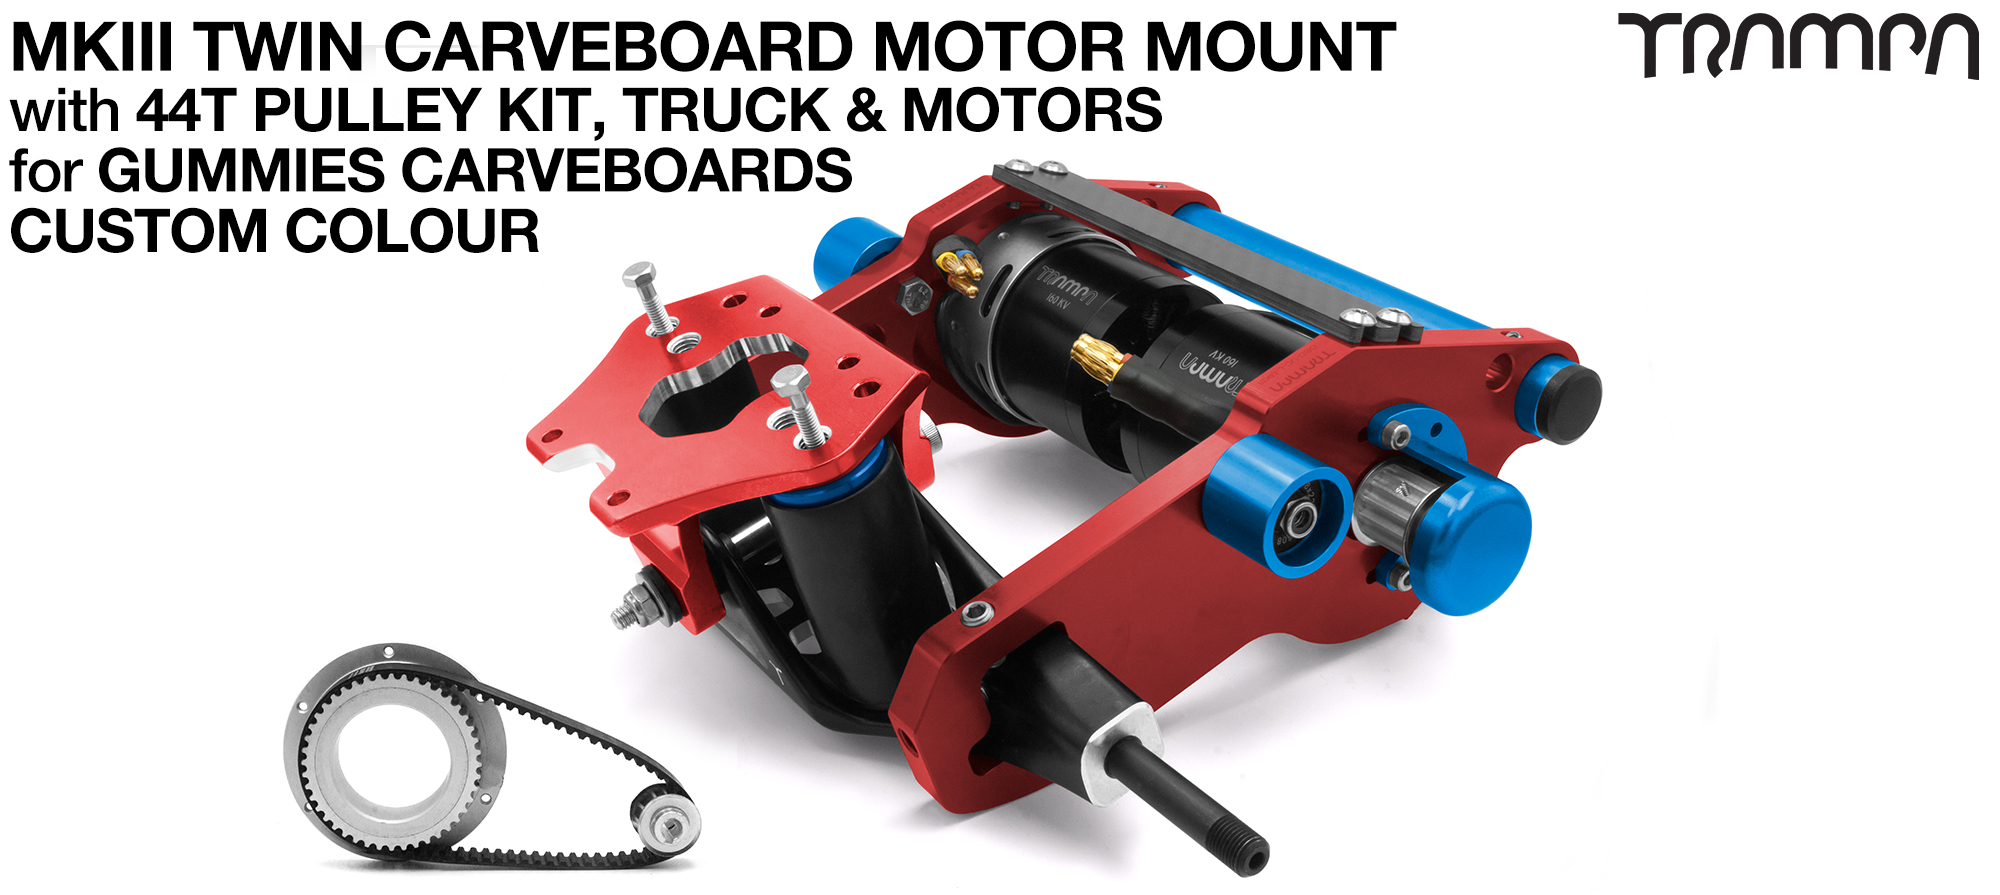 MkIII GUMMIES CARVEBOARD Motormount Connector Panel On a TRUCK with 44 Tooth Pulley Kit & Motor - TWIN